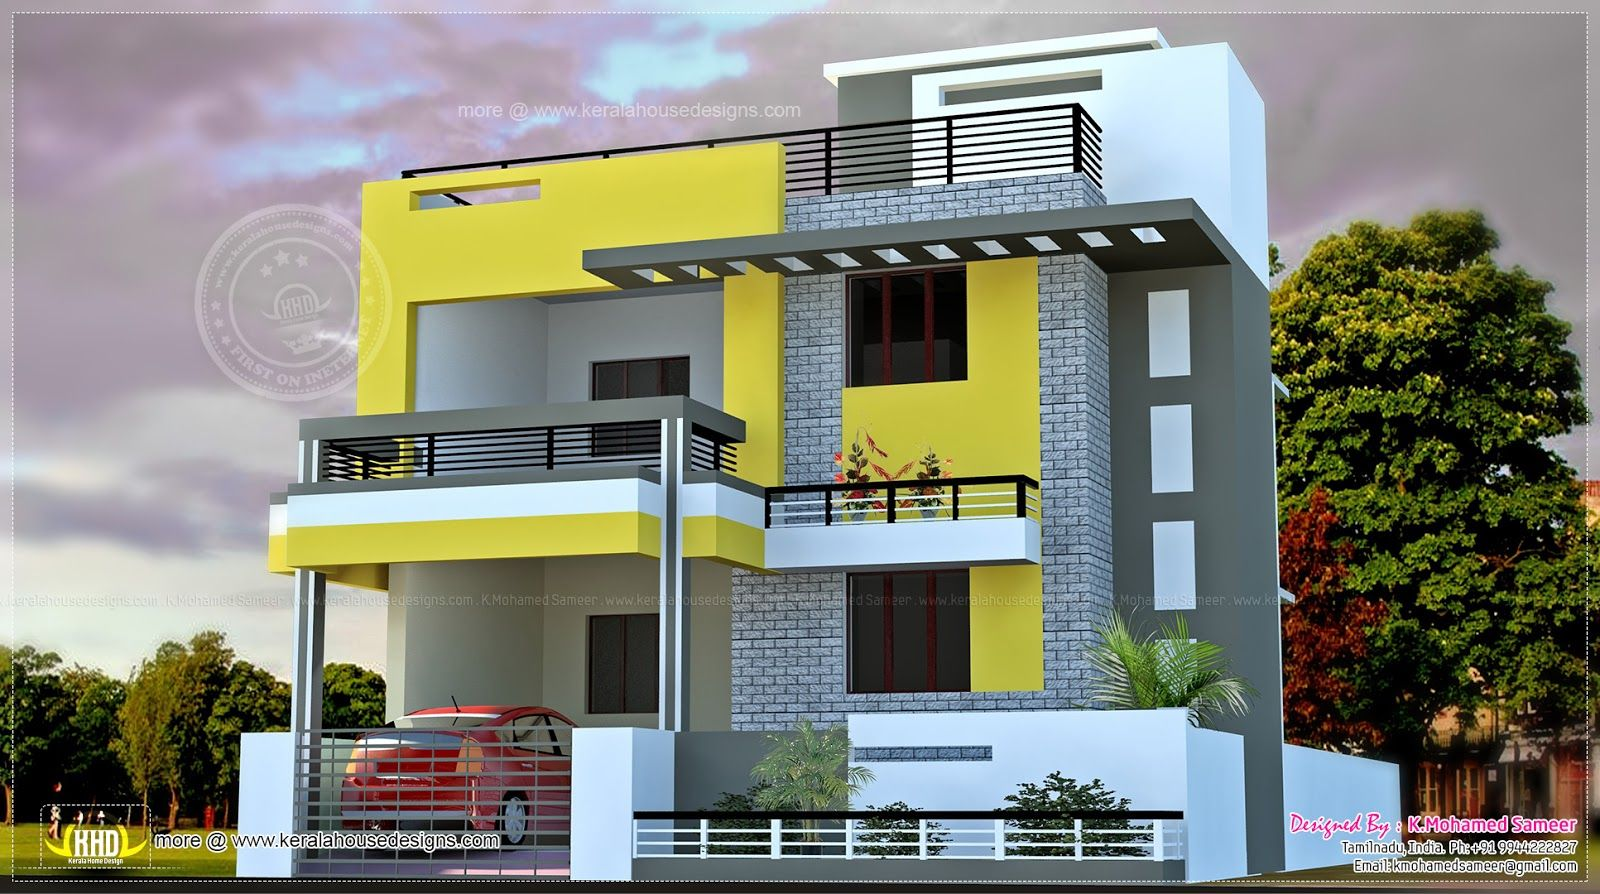 Elevations of residential buildings in indian photo Small house indian style